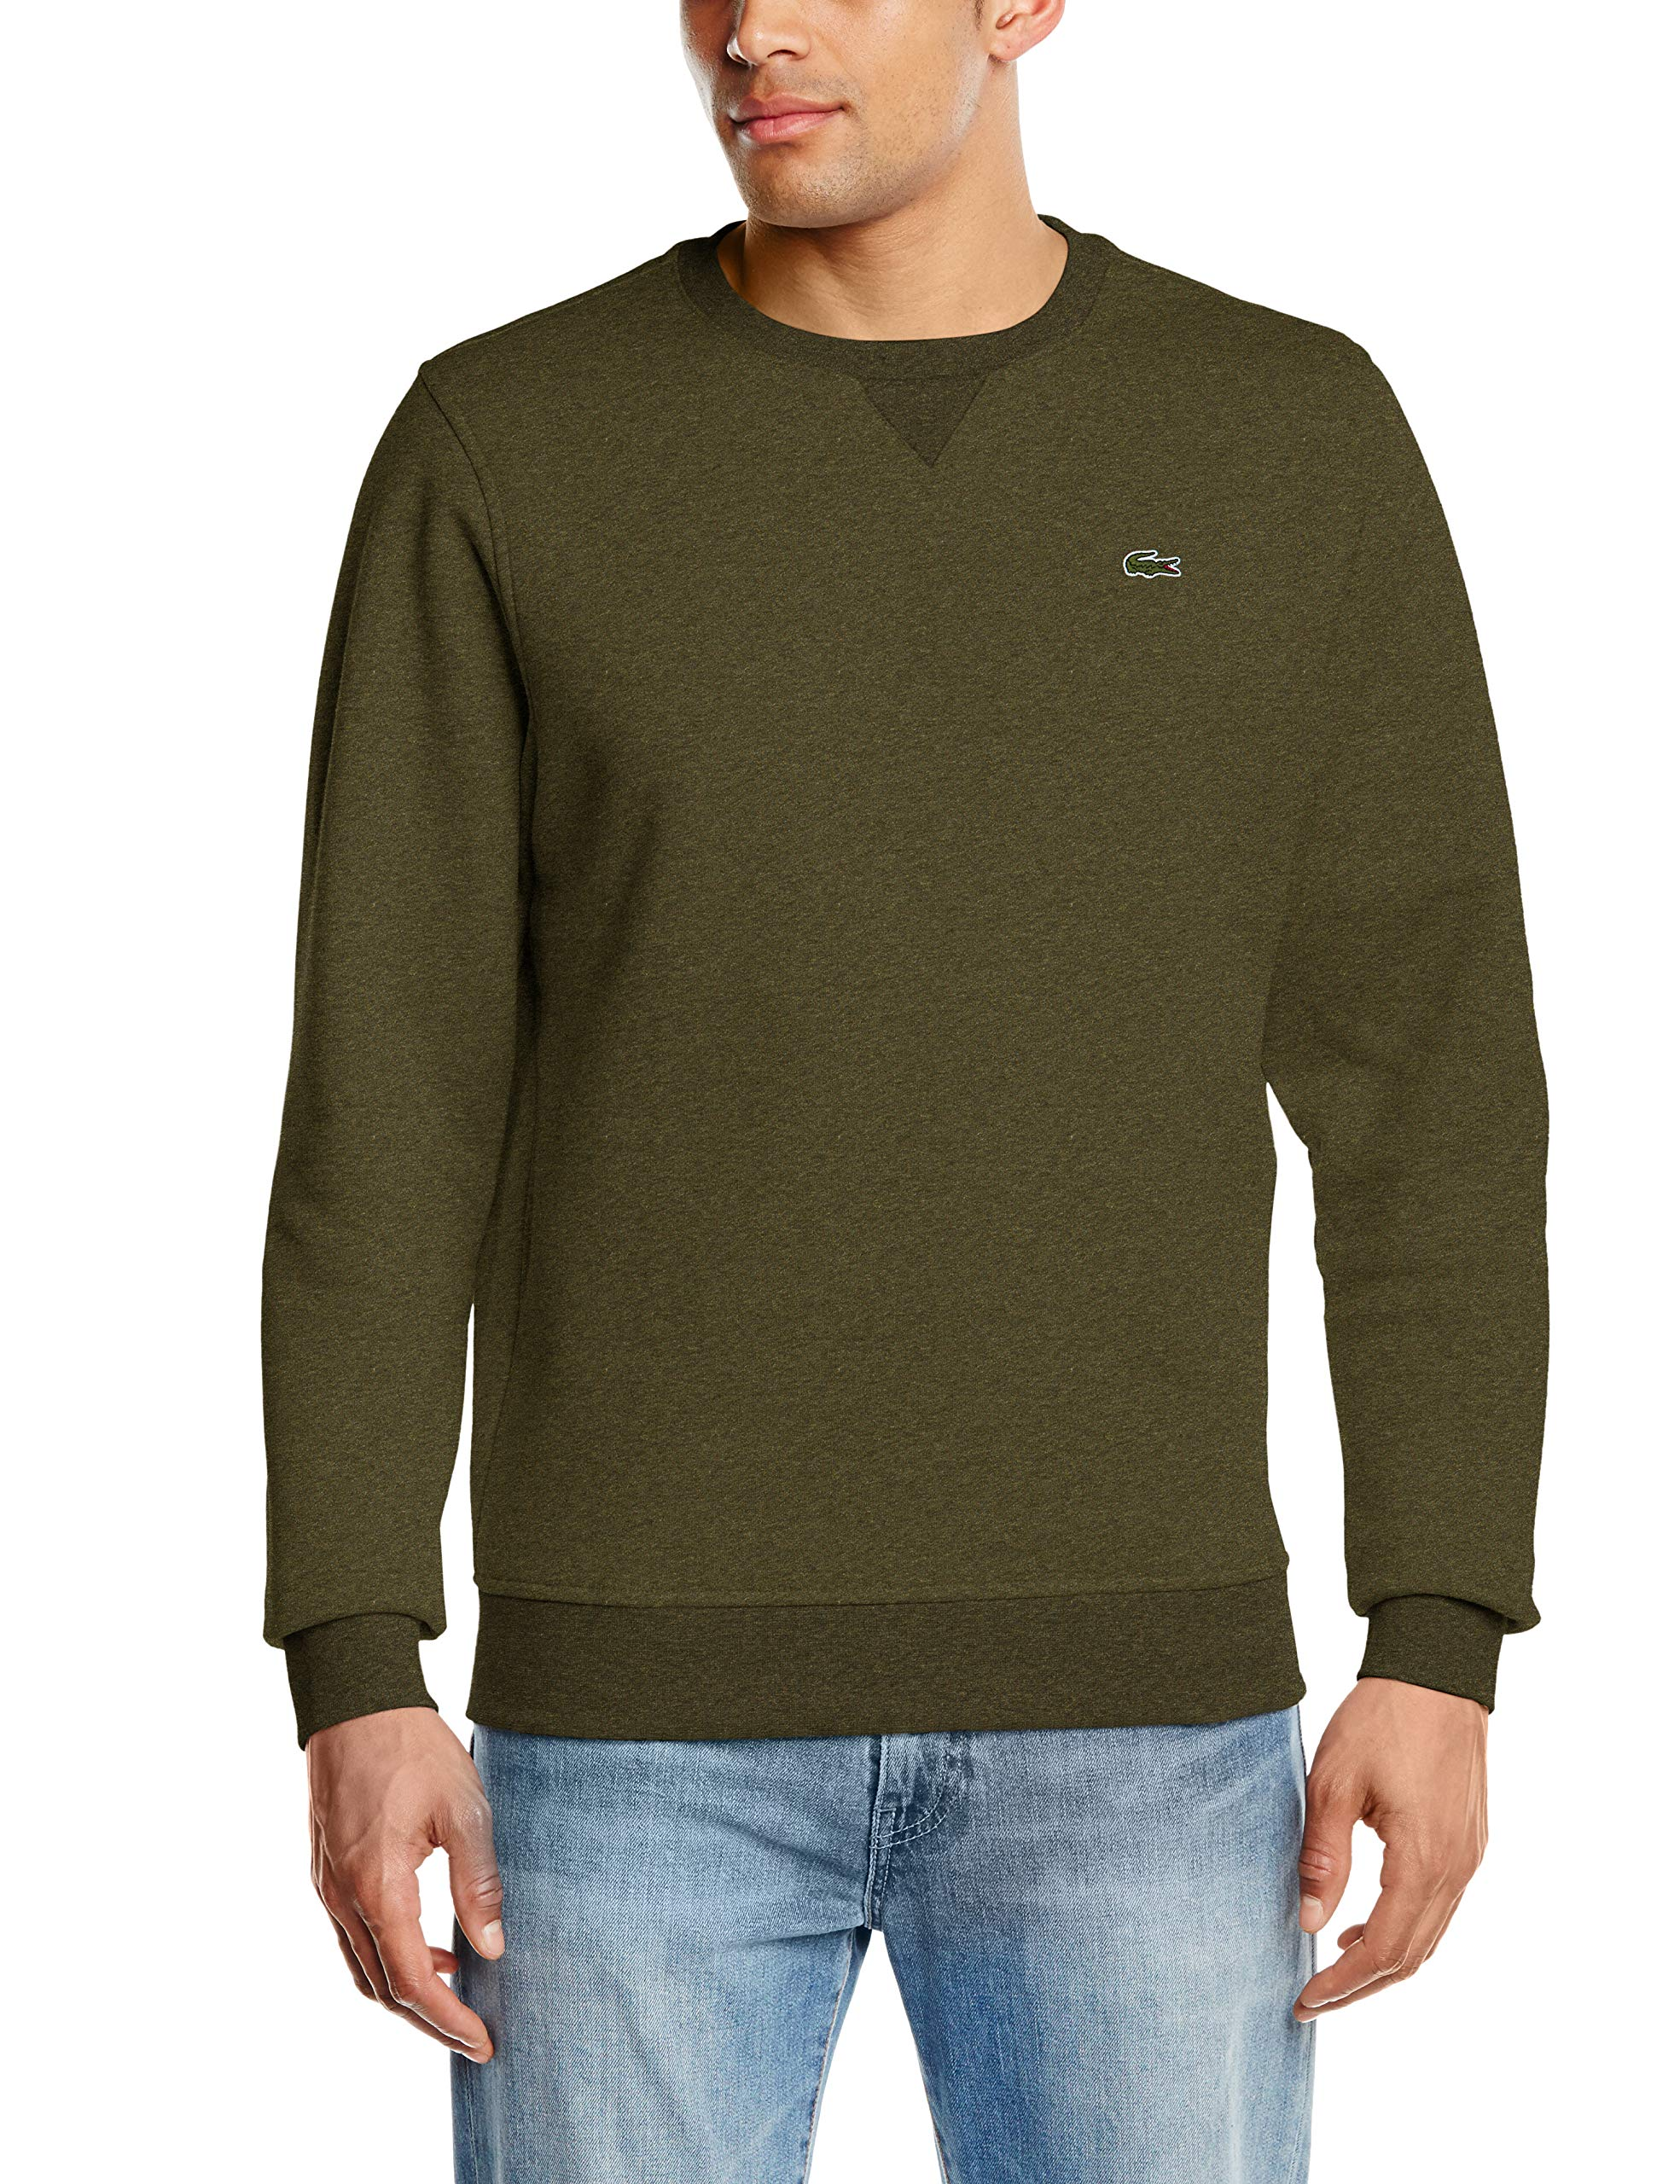 9f4074e11 Top Sweat-shirts homme selon les notes Amazon.fr